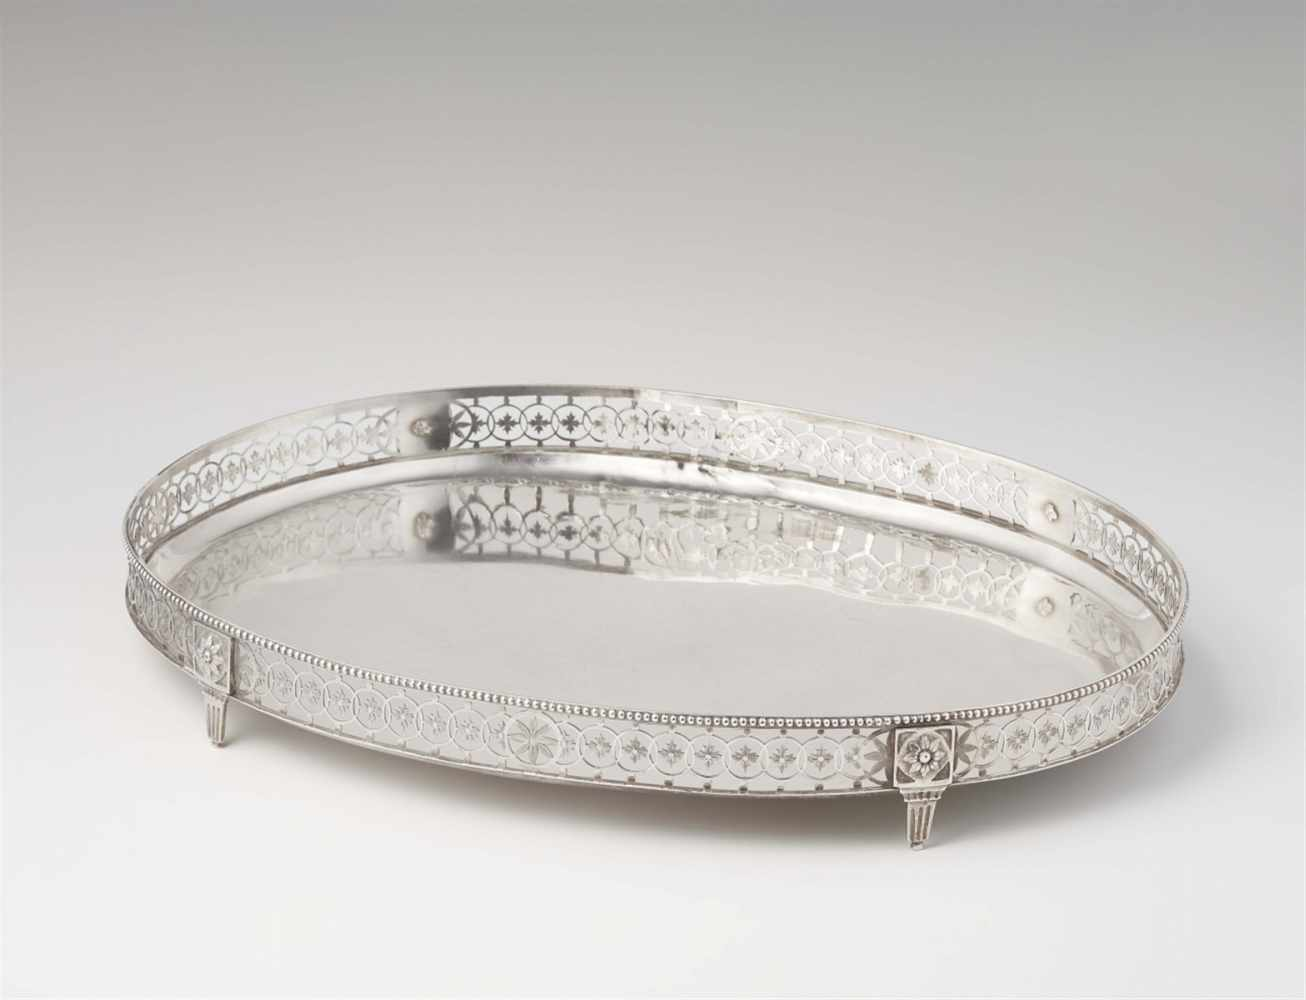 Lot 340 - An Augsburg silver platterOval tray with pierced gallery rim resting on four supports. L 41.5; W 30;